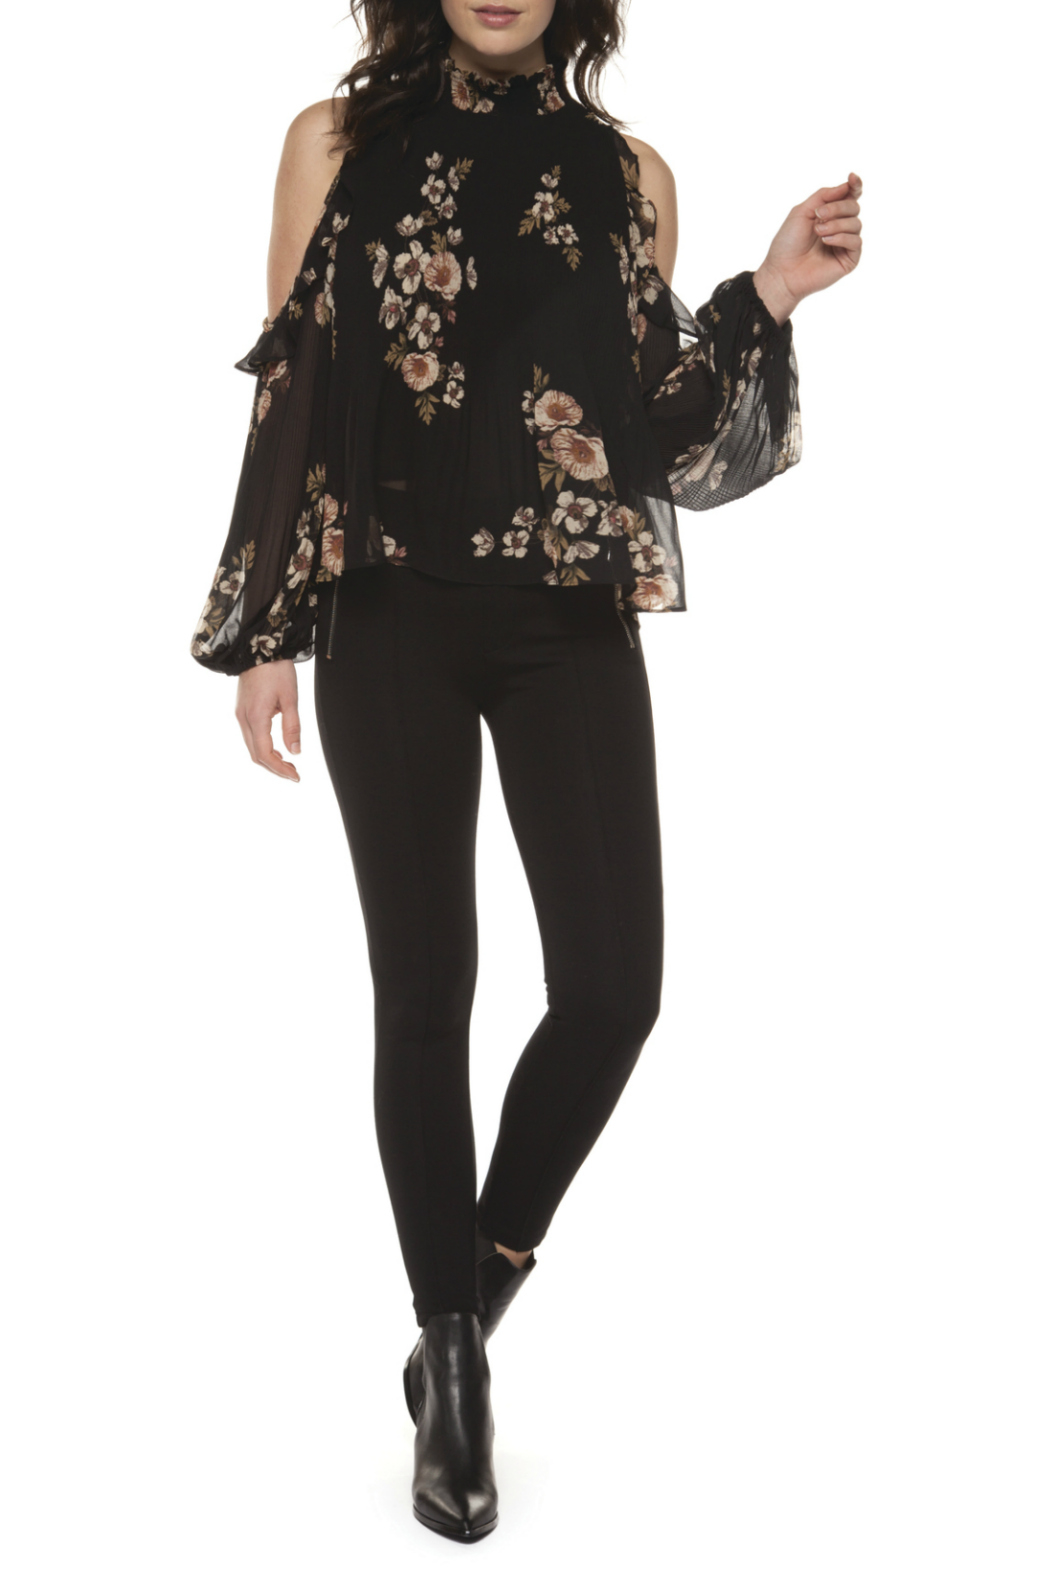 402f49a6314eb7 Black Tape Dex Ruffle Hi Neck Floral Cold Shoulder Blouse - Front Cropped  Image